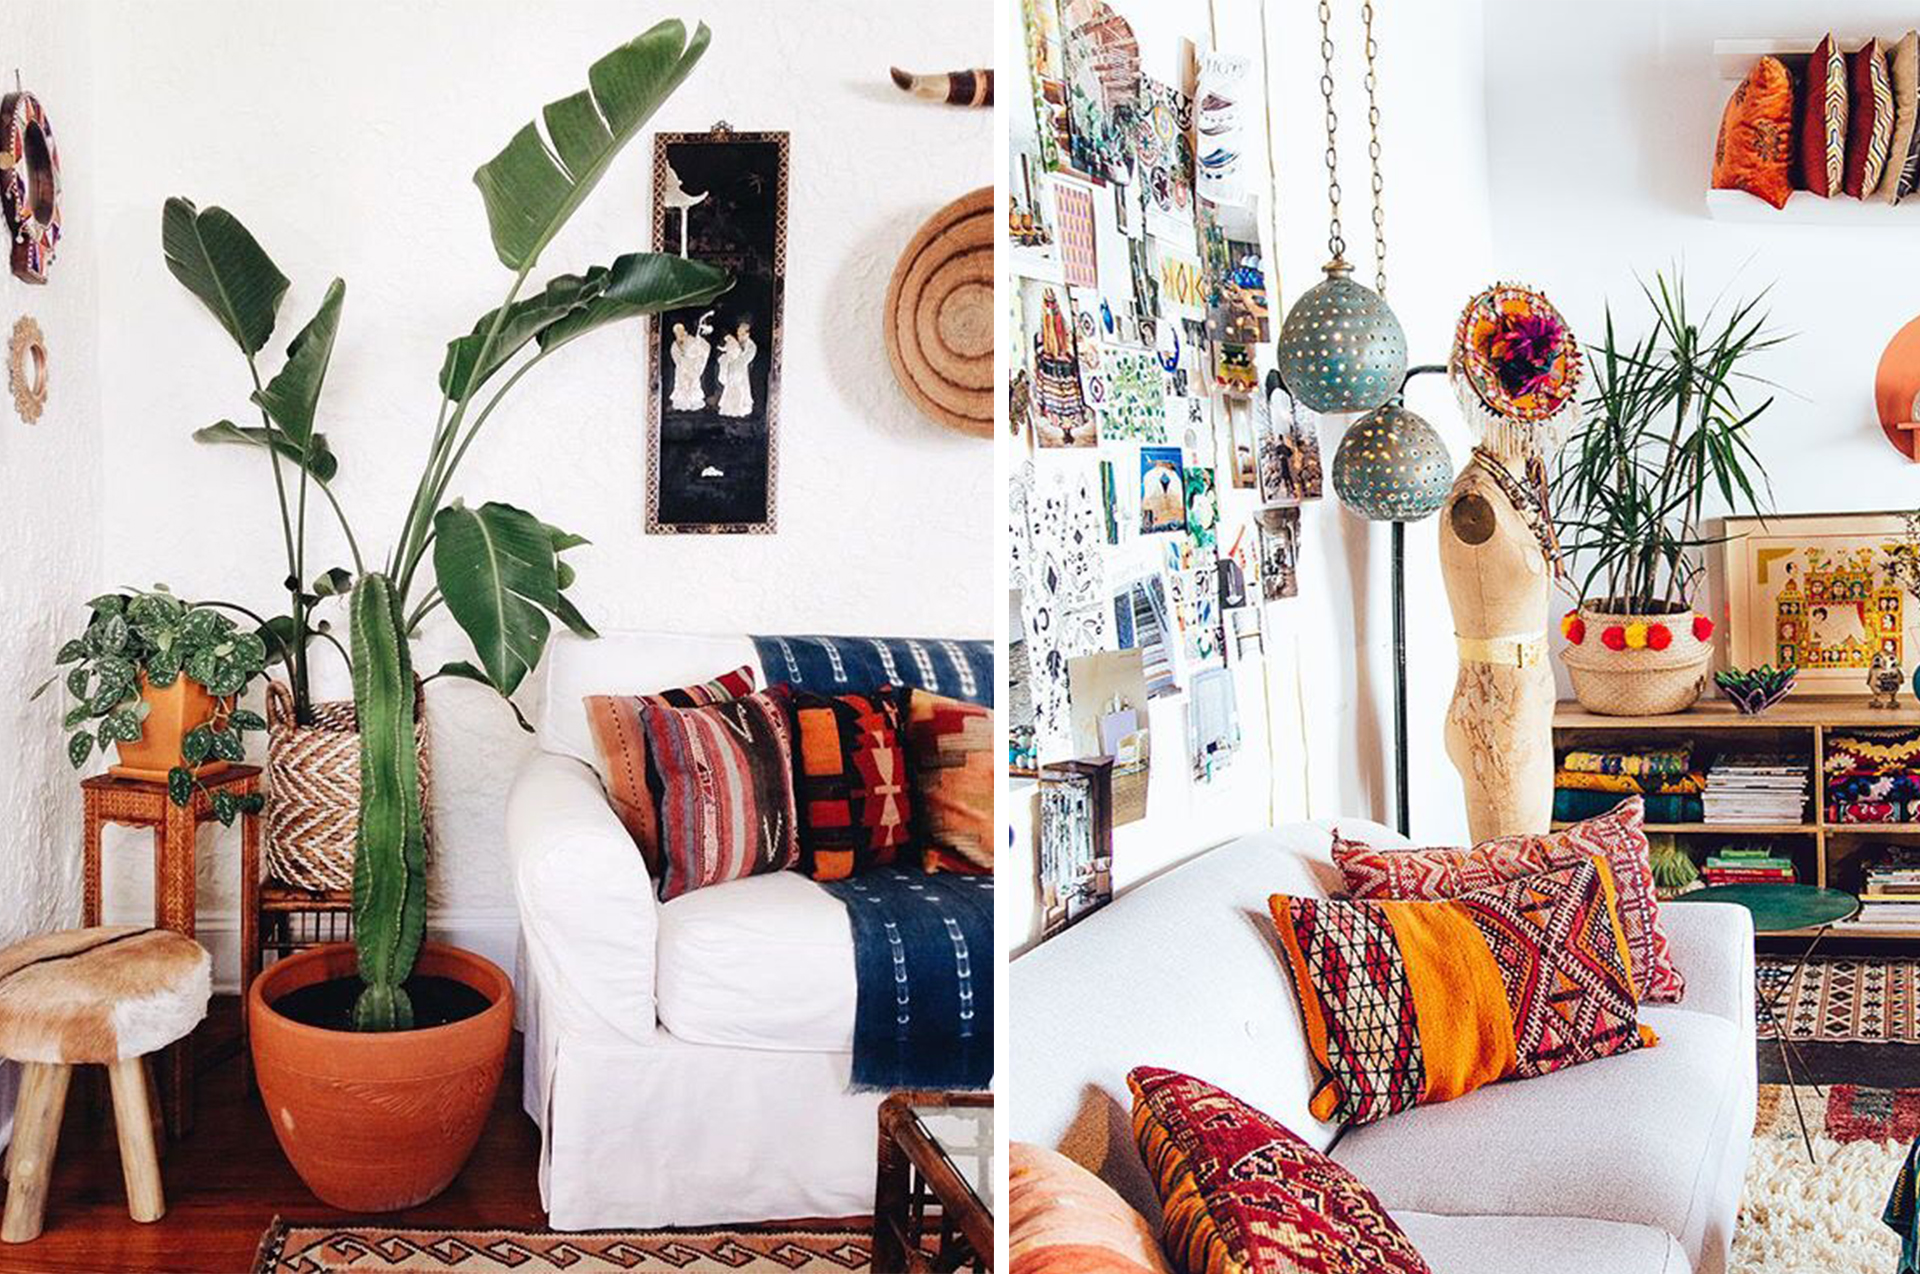 Zimmer Style Ideen Boho Chic Bedroom Die Zimmer Inspiration Im Today Is Mag